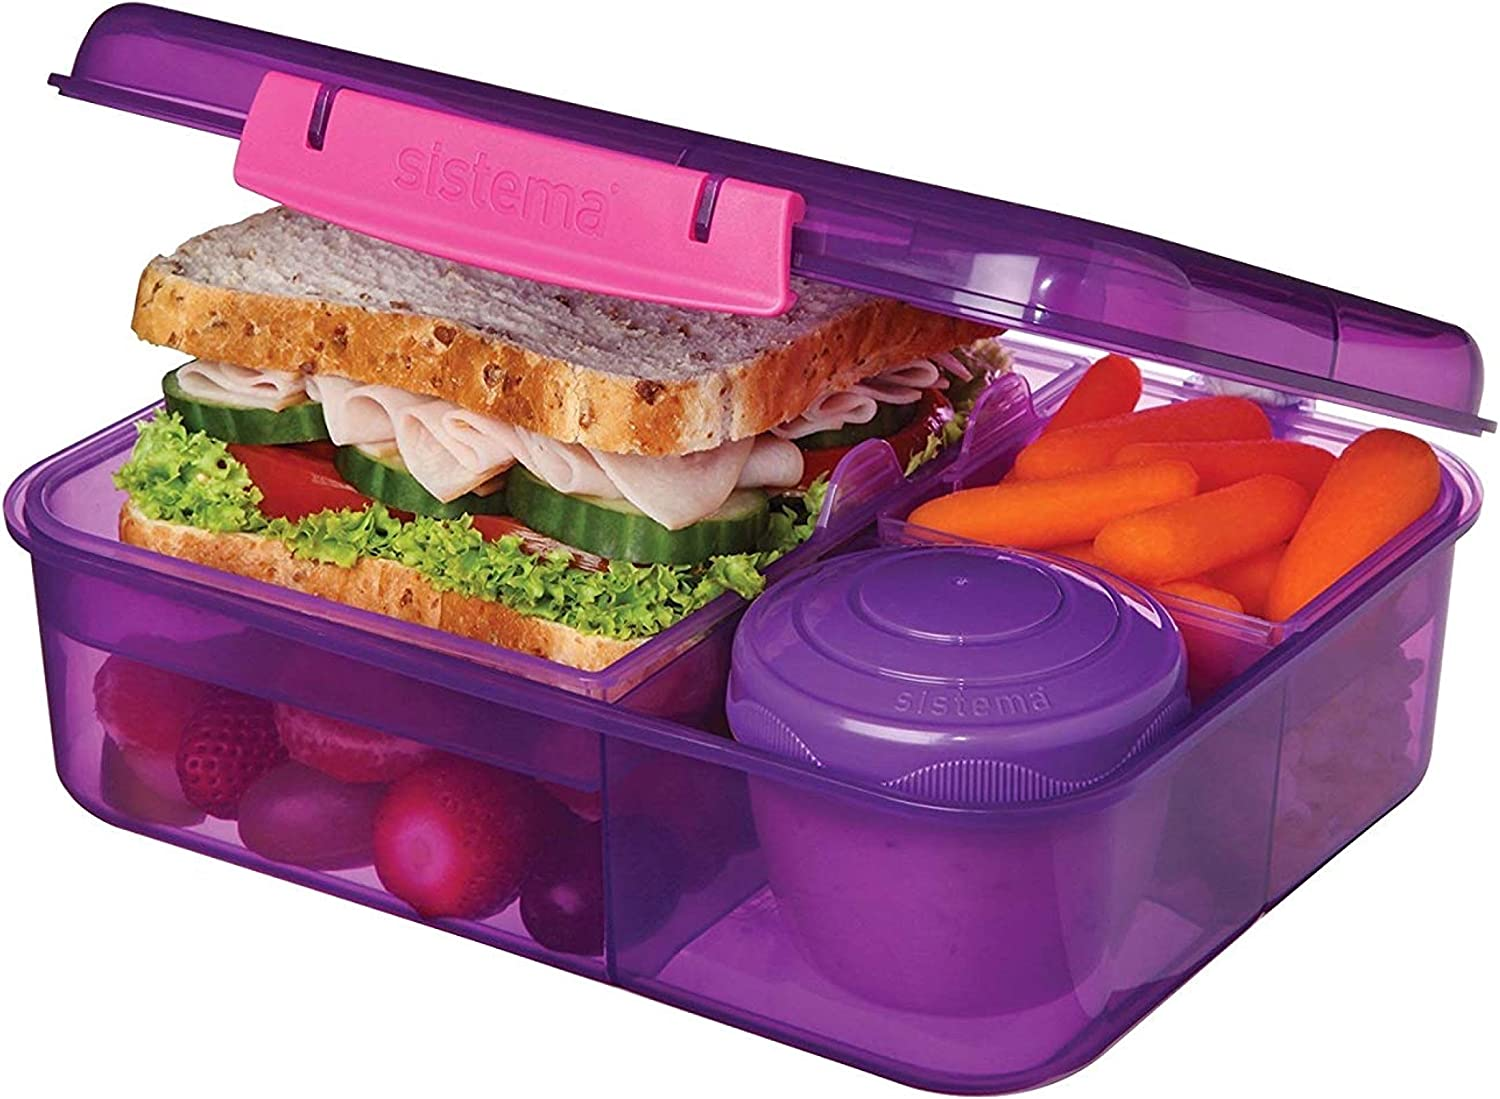 Top 9 Best Bento Box For Toddlers Lunch Time (2020 Reviews) 4